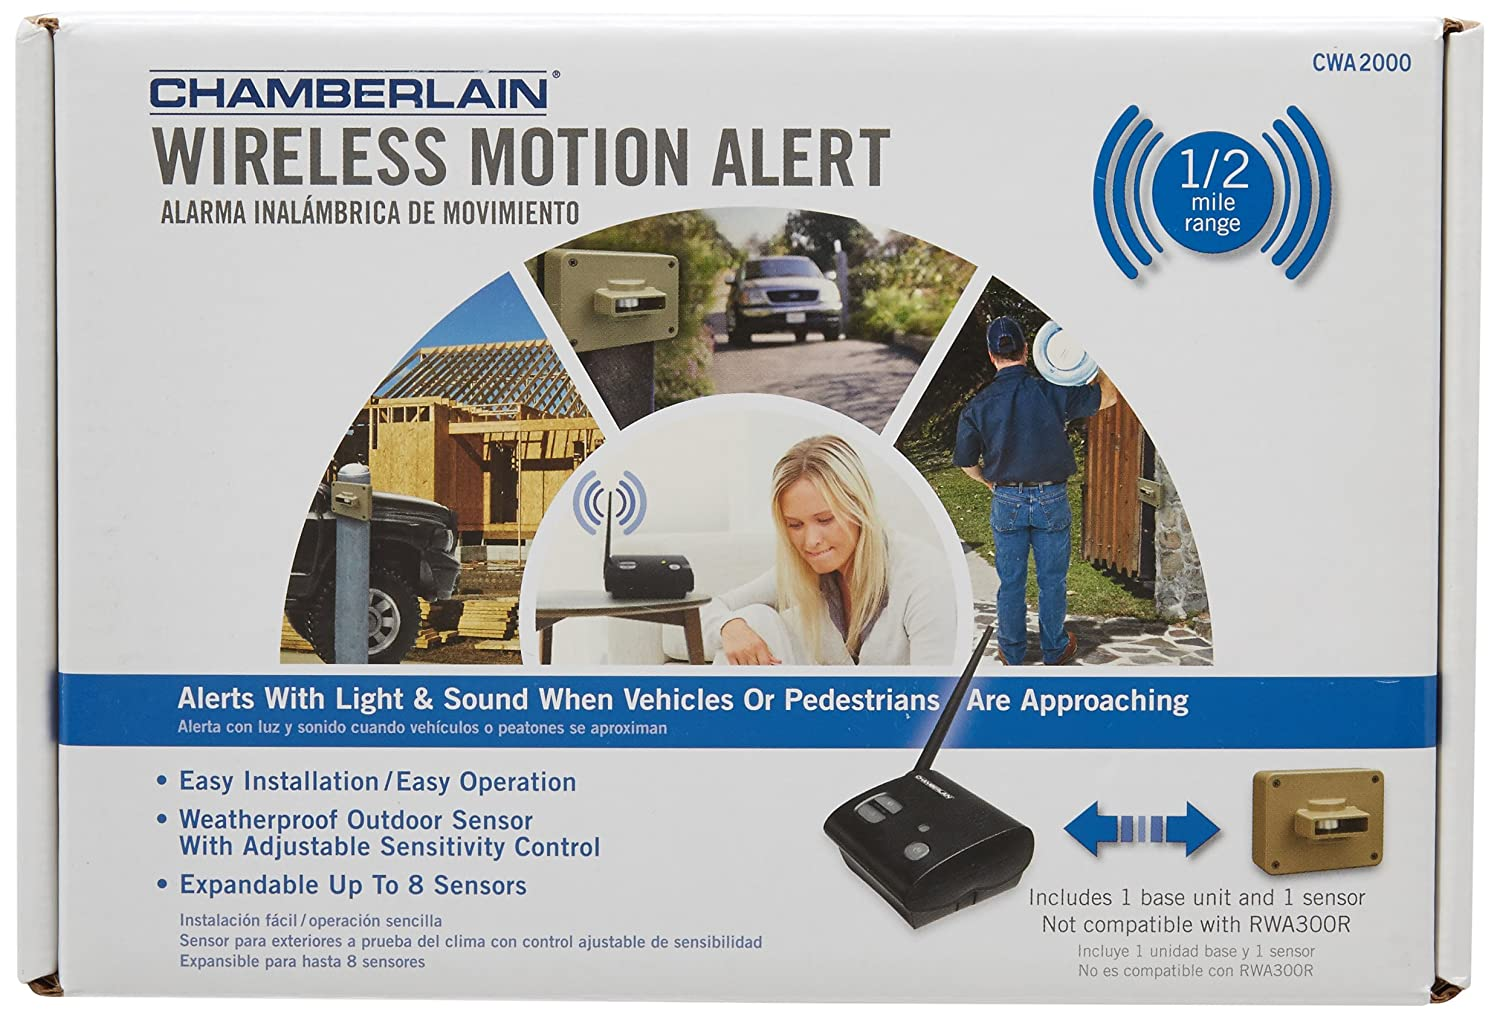 Amazon.com: Chamberlain CWA2000 Wireless Motion Alert: Health & Personal Care